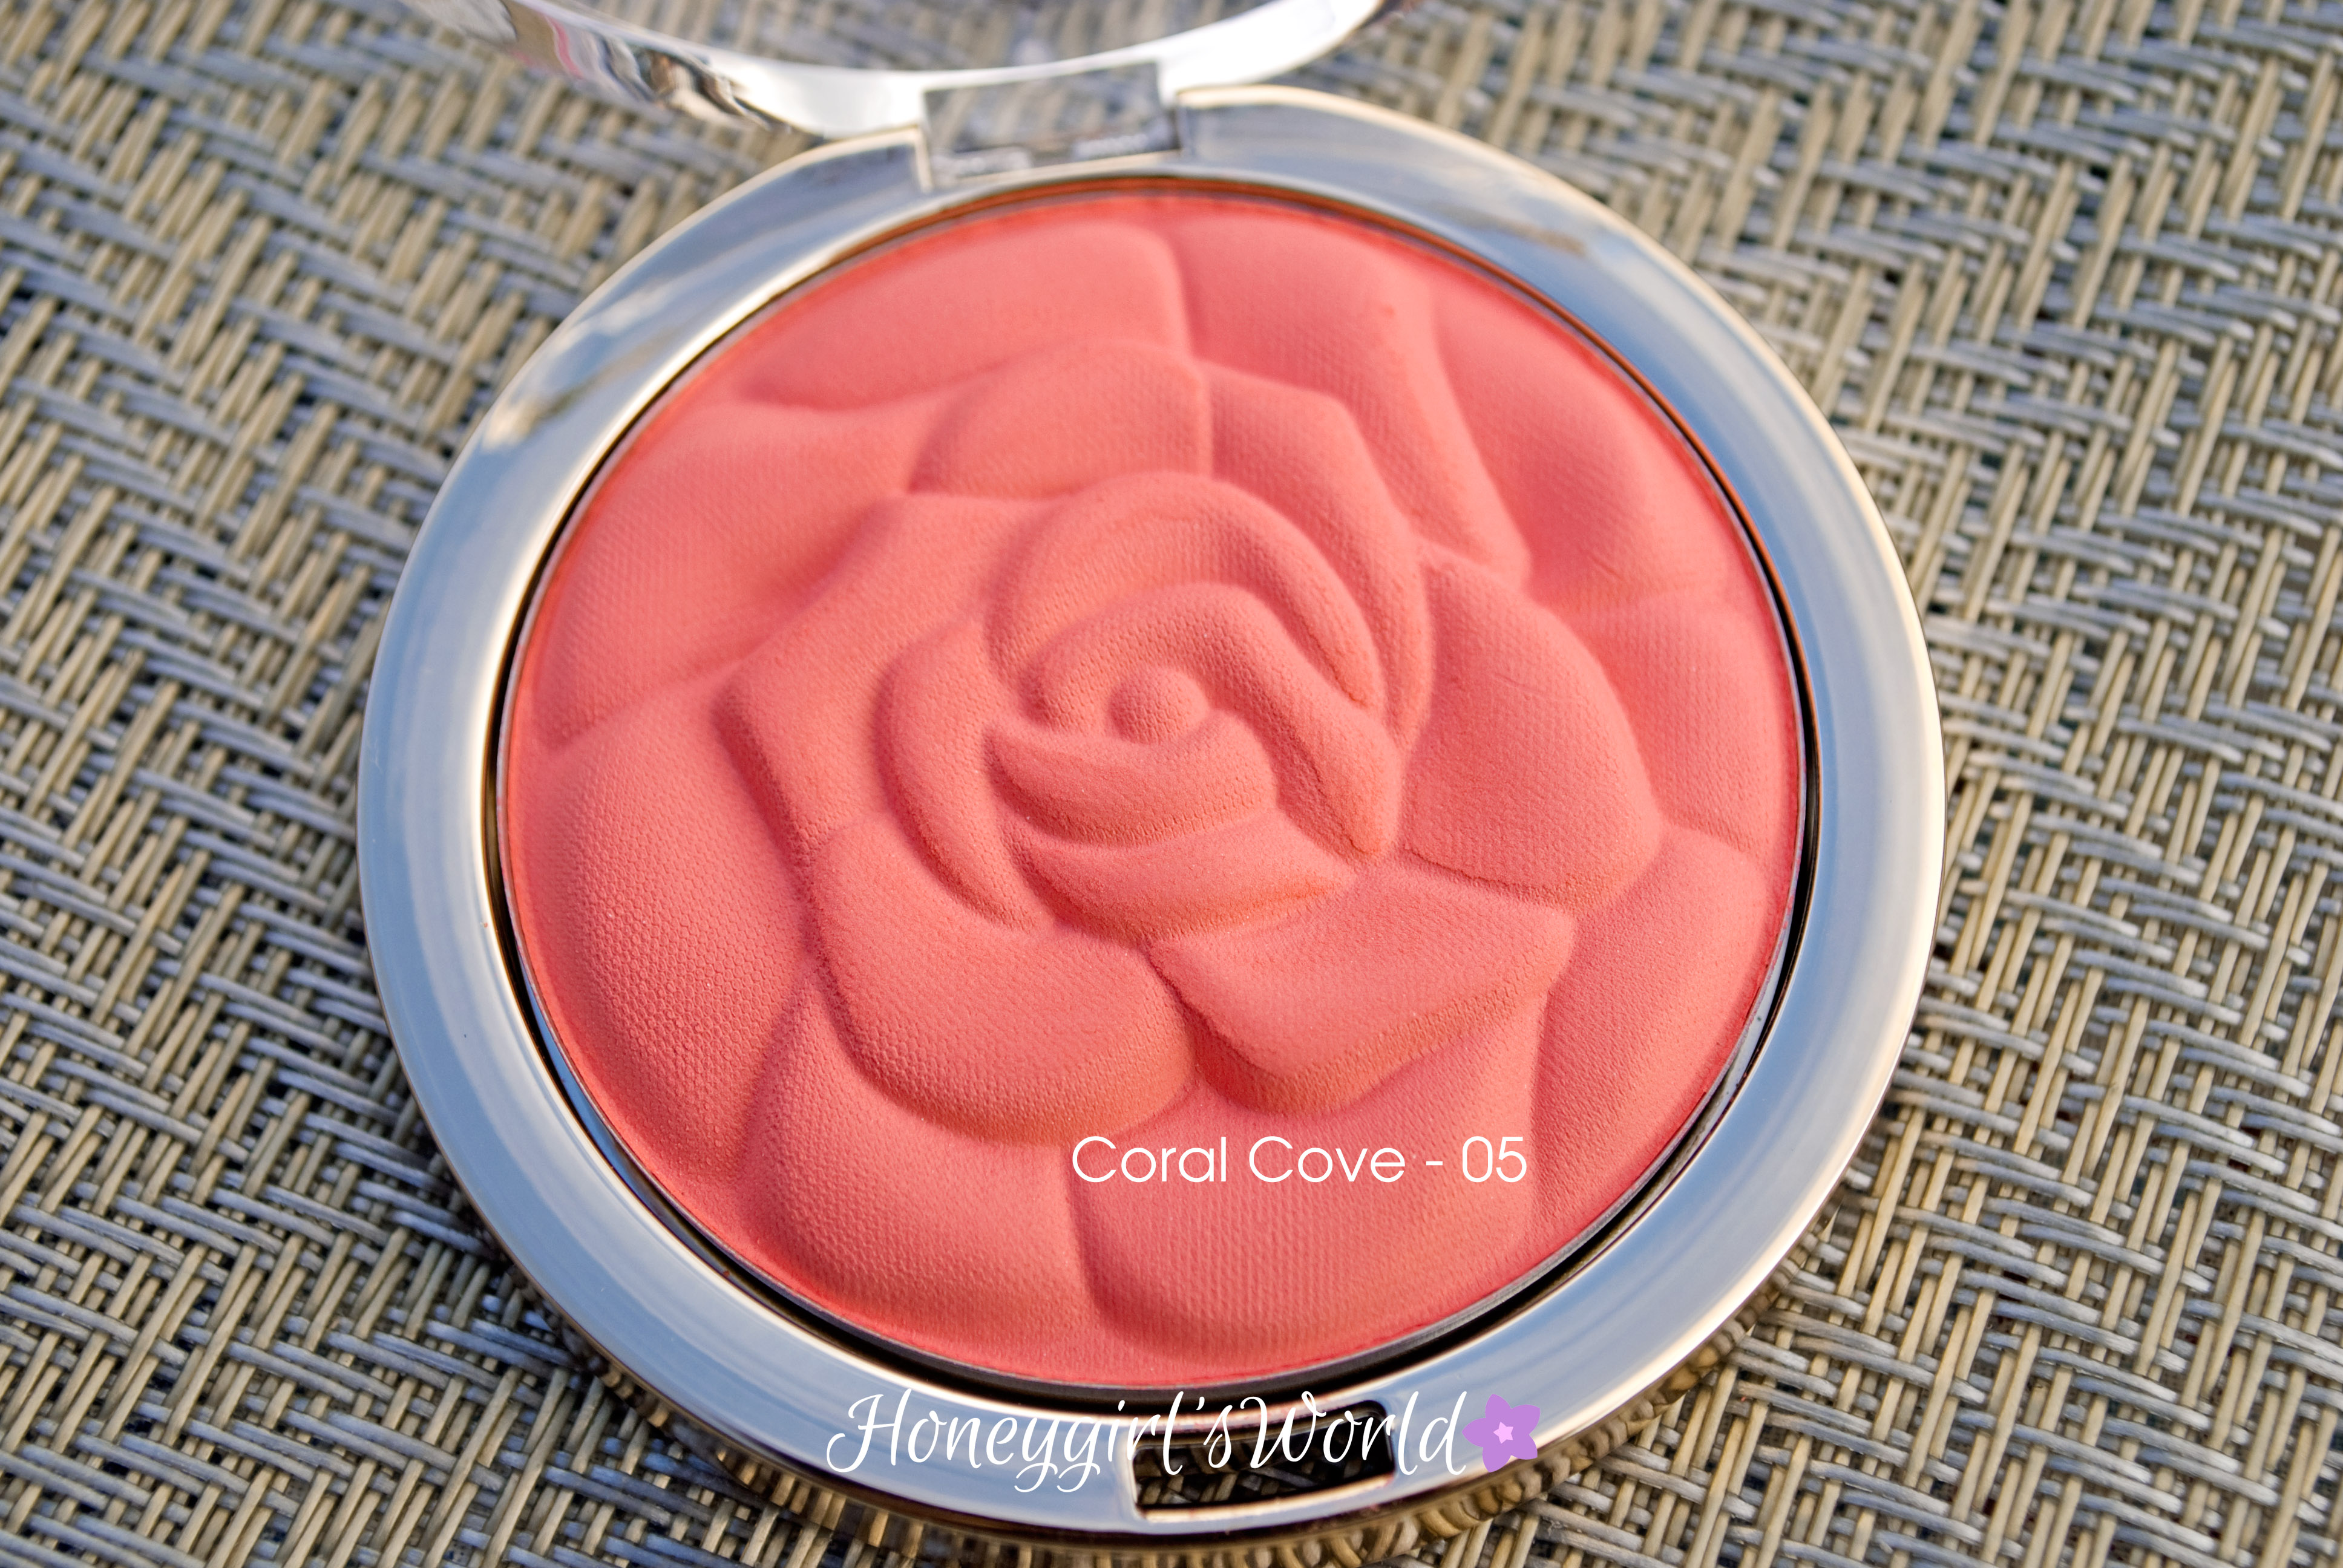 05 Coral Cove Milani Rose Blush